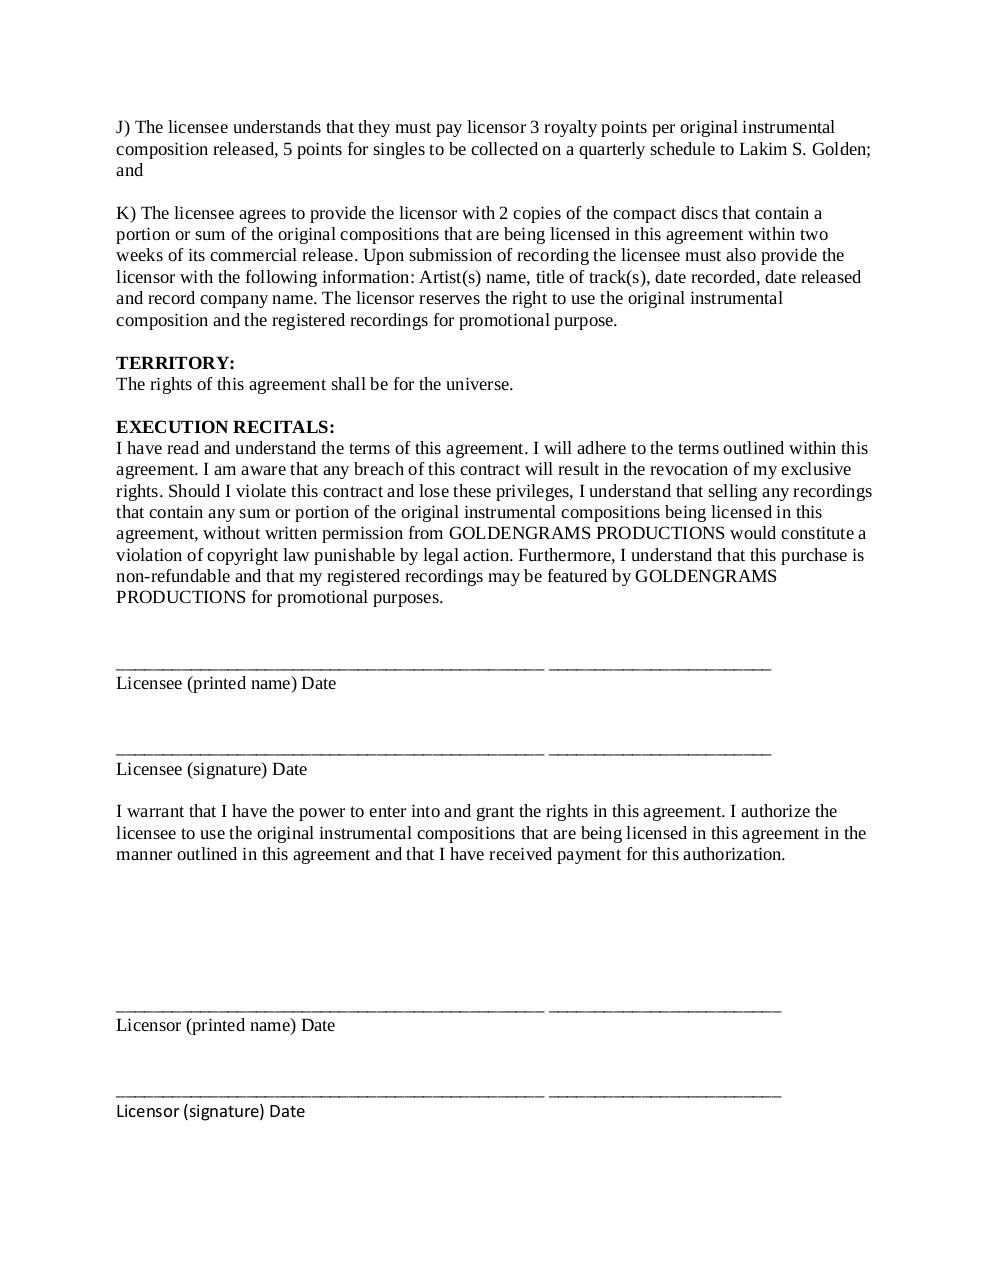 GoldenGrams Productions_Exclusive License Agreement.pdf - page 3/3